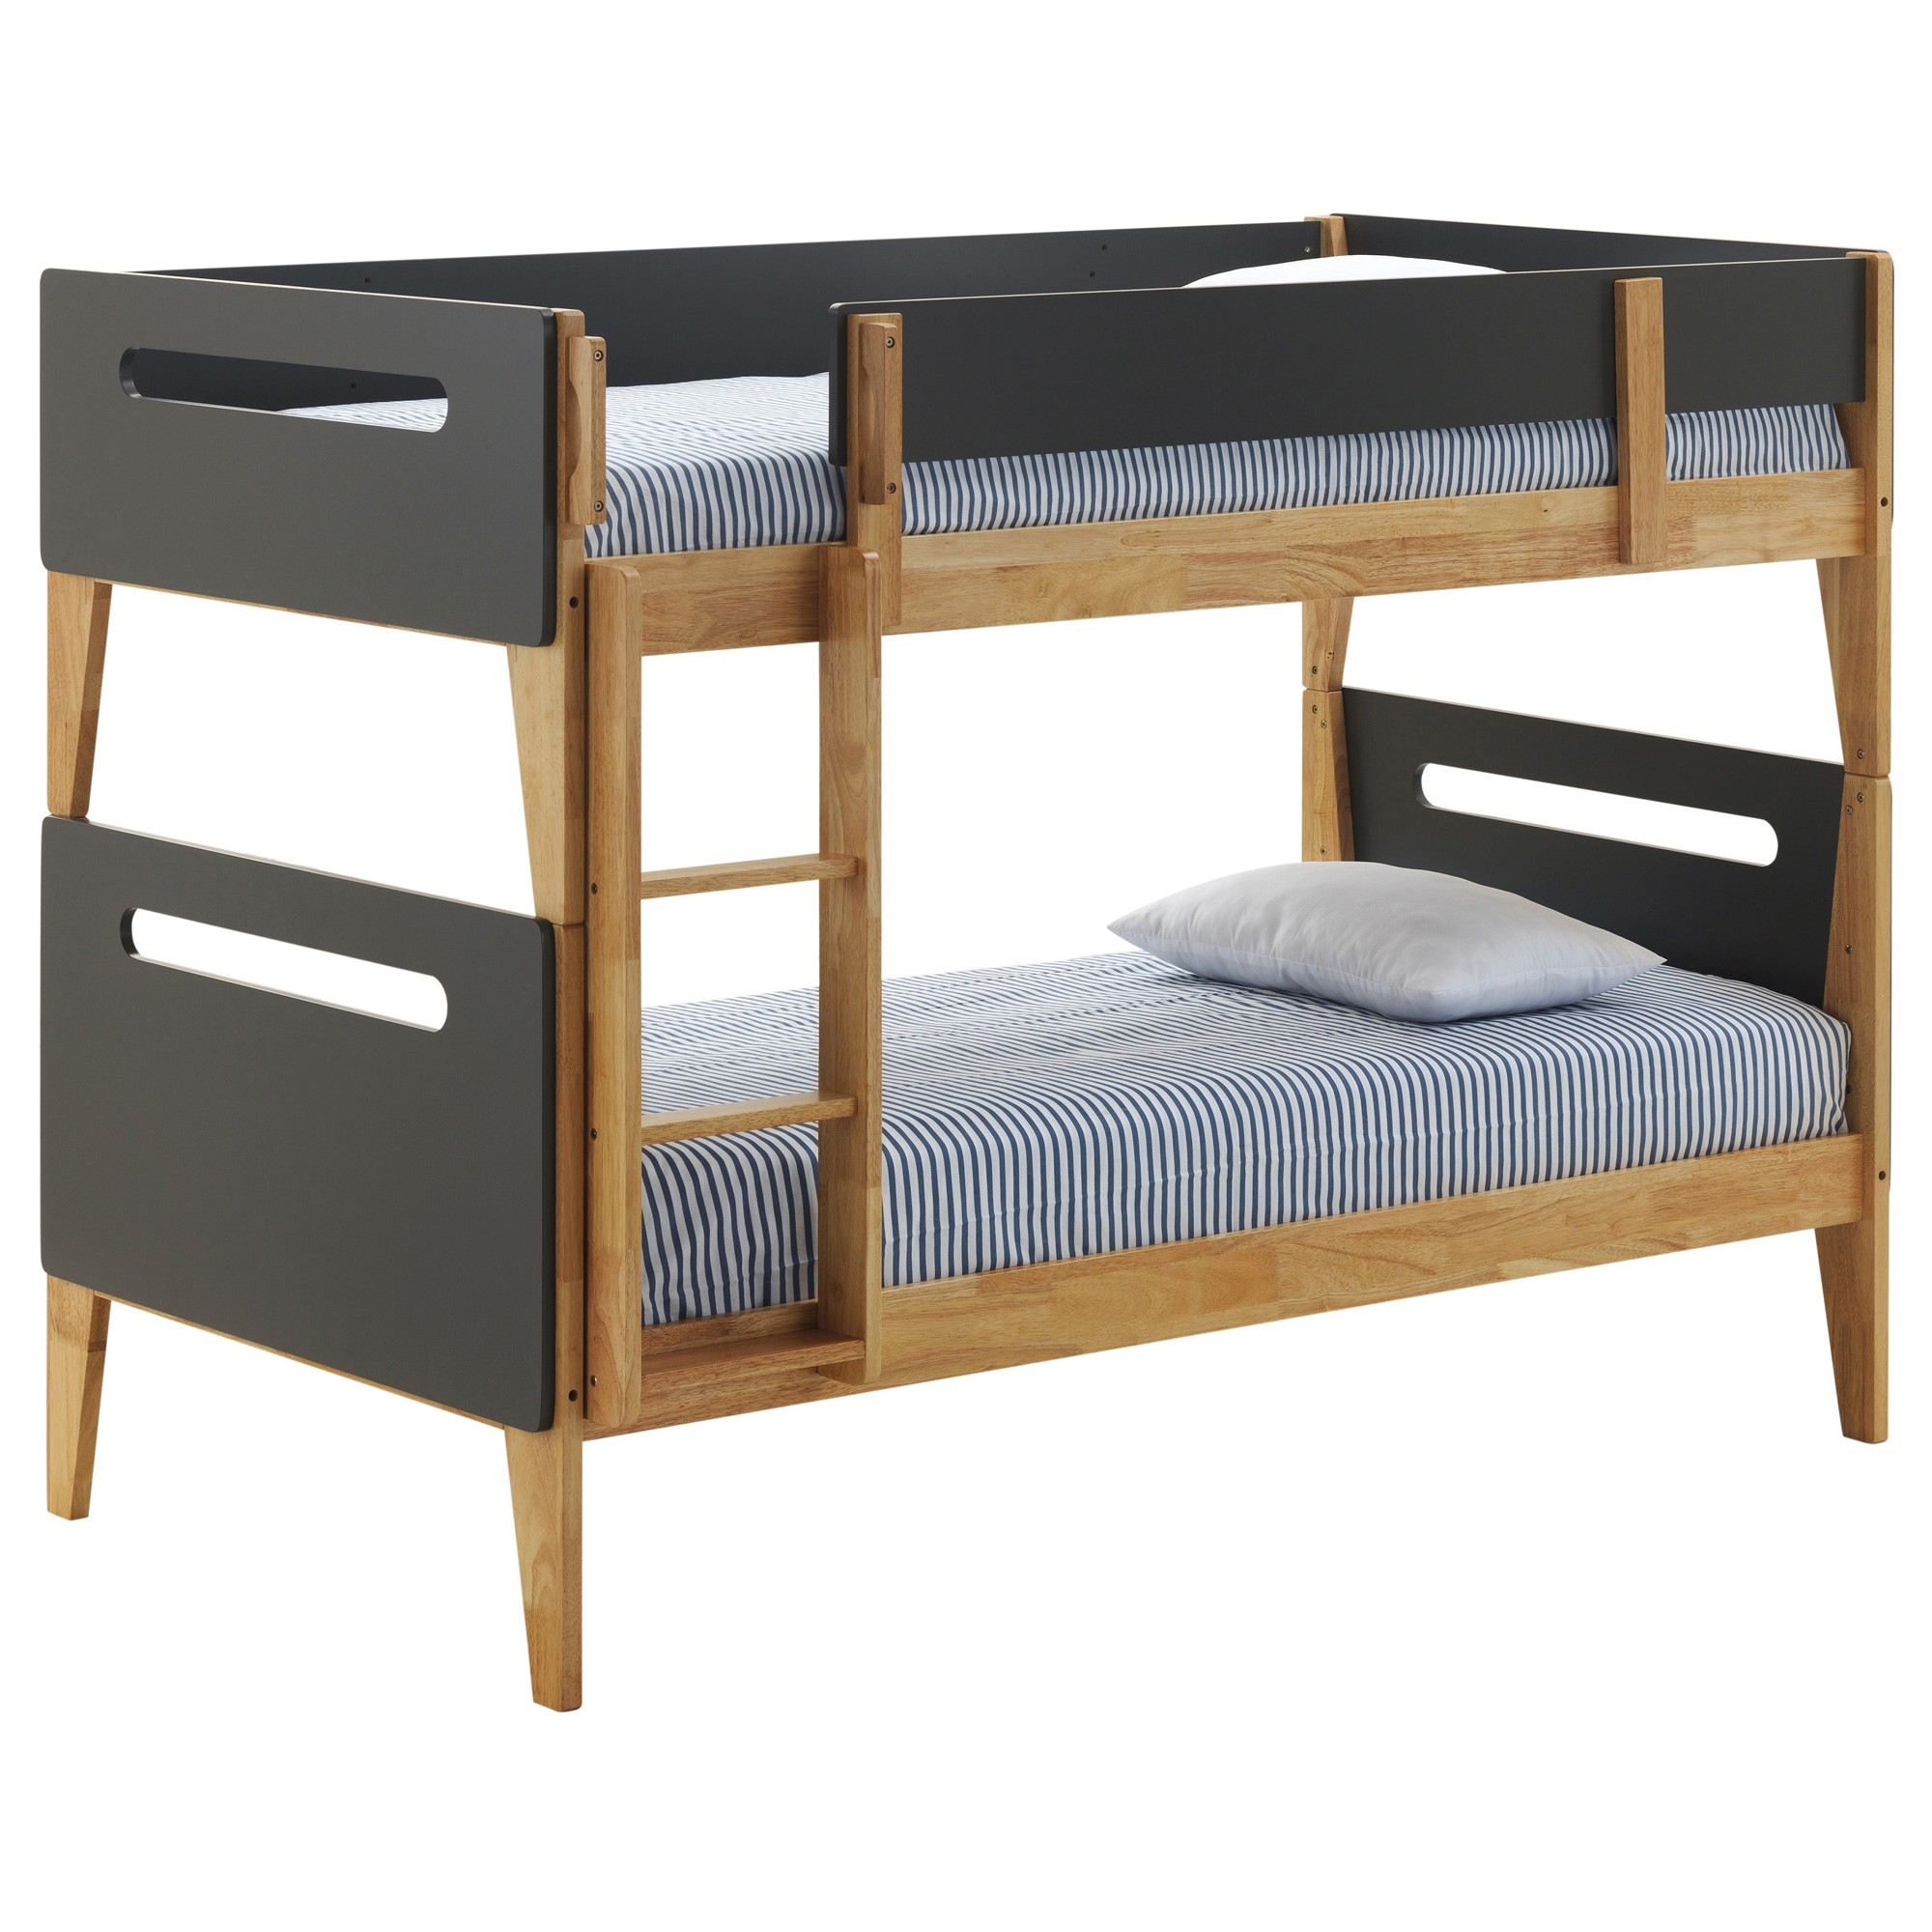 Casla Wooden Bunk Bed, Single